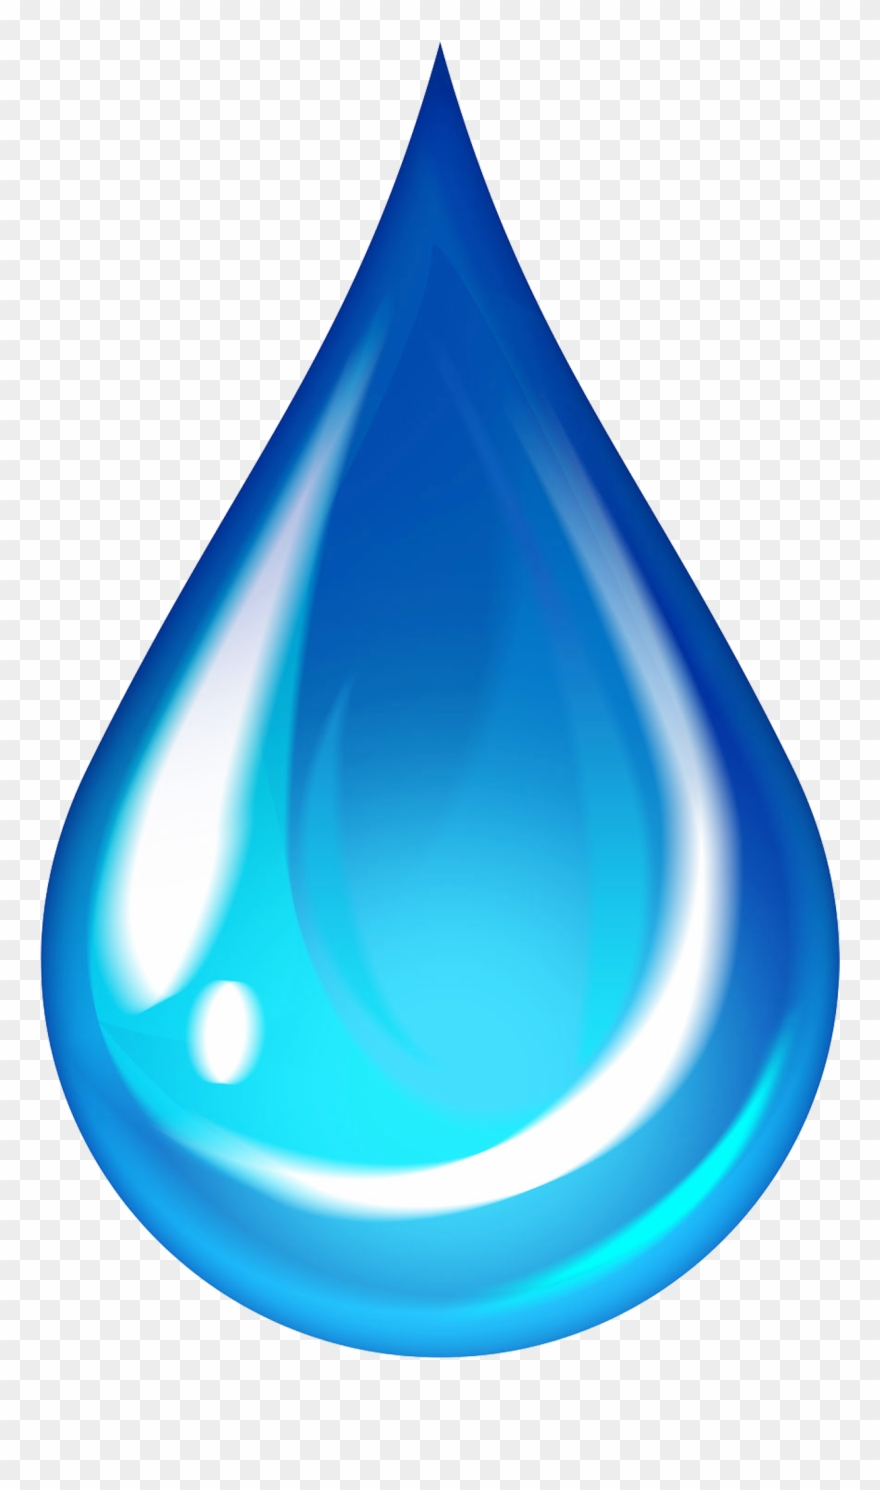 Water Drop Symbol Clipart Best Kmtqp4 Clipart Water Png Download 447395 Pinclipart